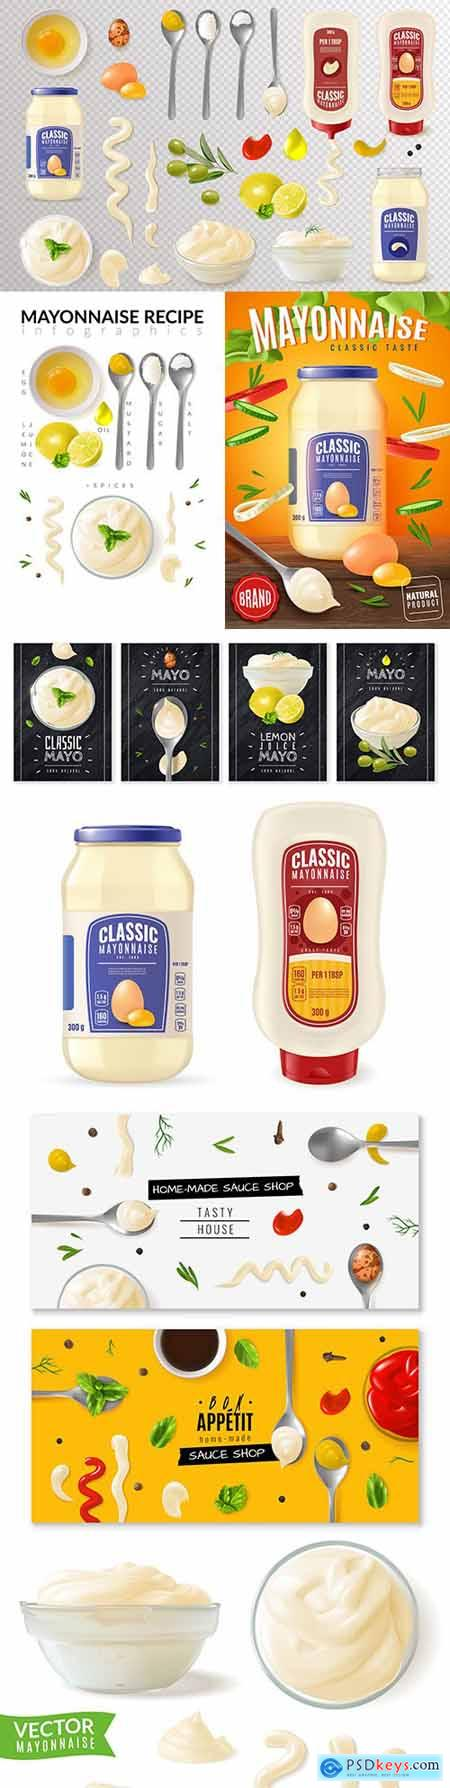 Realistic illustrations of glass can mayonnaise and recipe